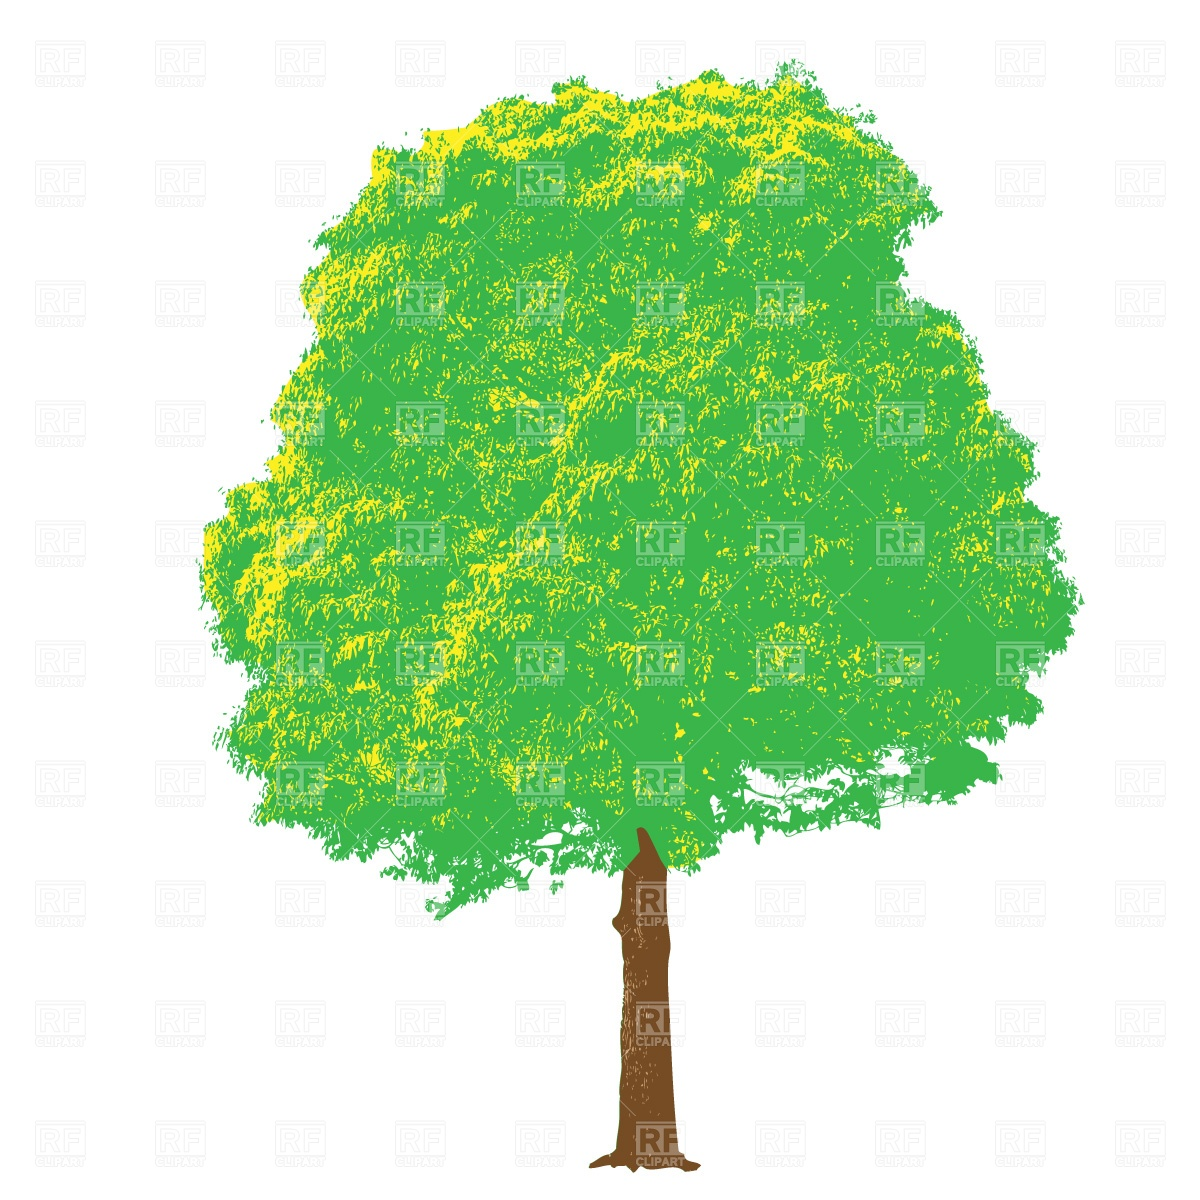 1200x1200 Foliage Tree Free Vector Image Vector Artwork Of Plants And